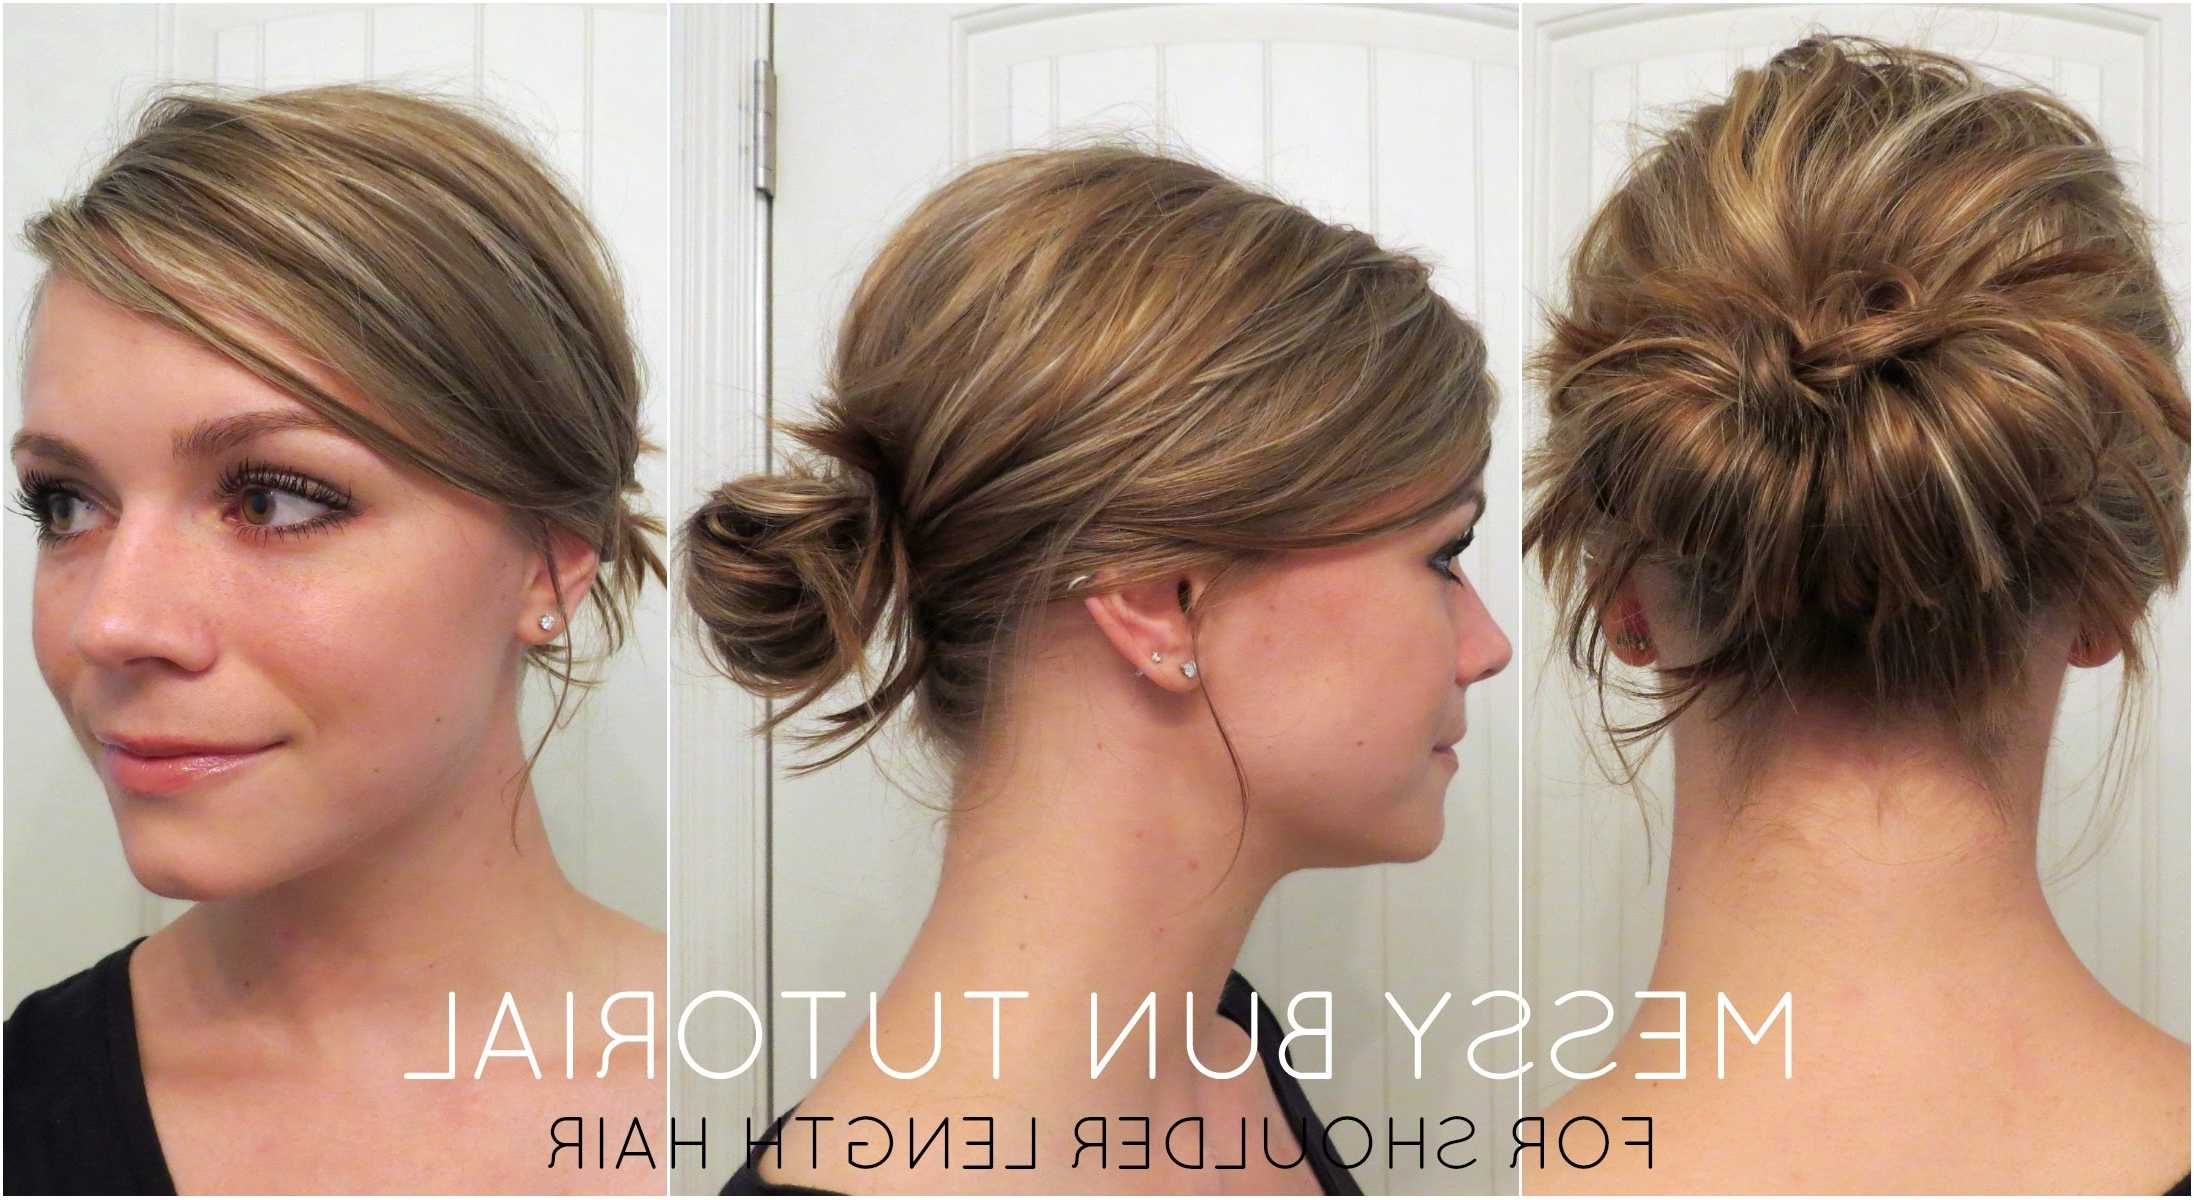 Messy Bun For Shoulder Length Hair – Youtube In Easy Updo Hairstyles For Shoulder Length Hair (View 9 of 15)